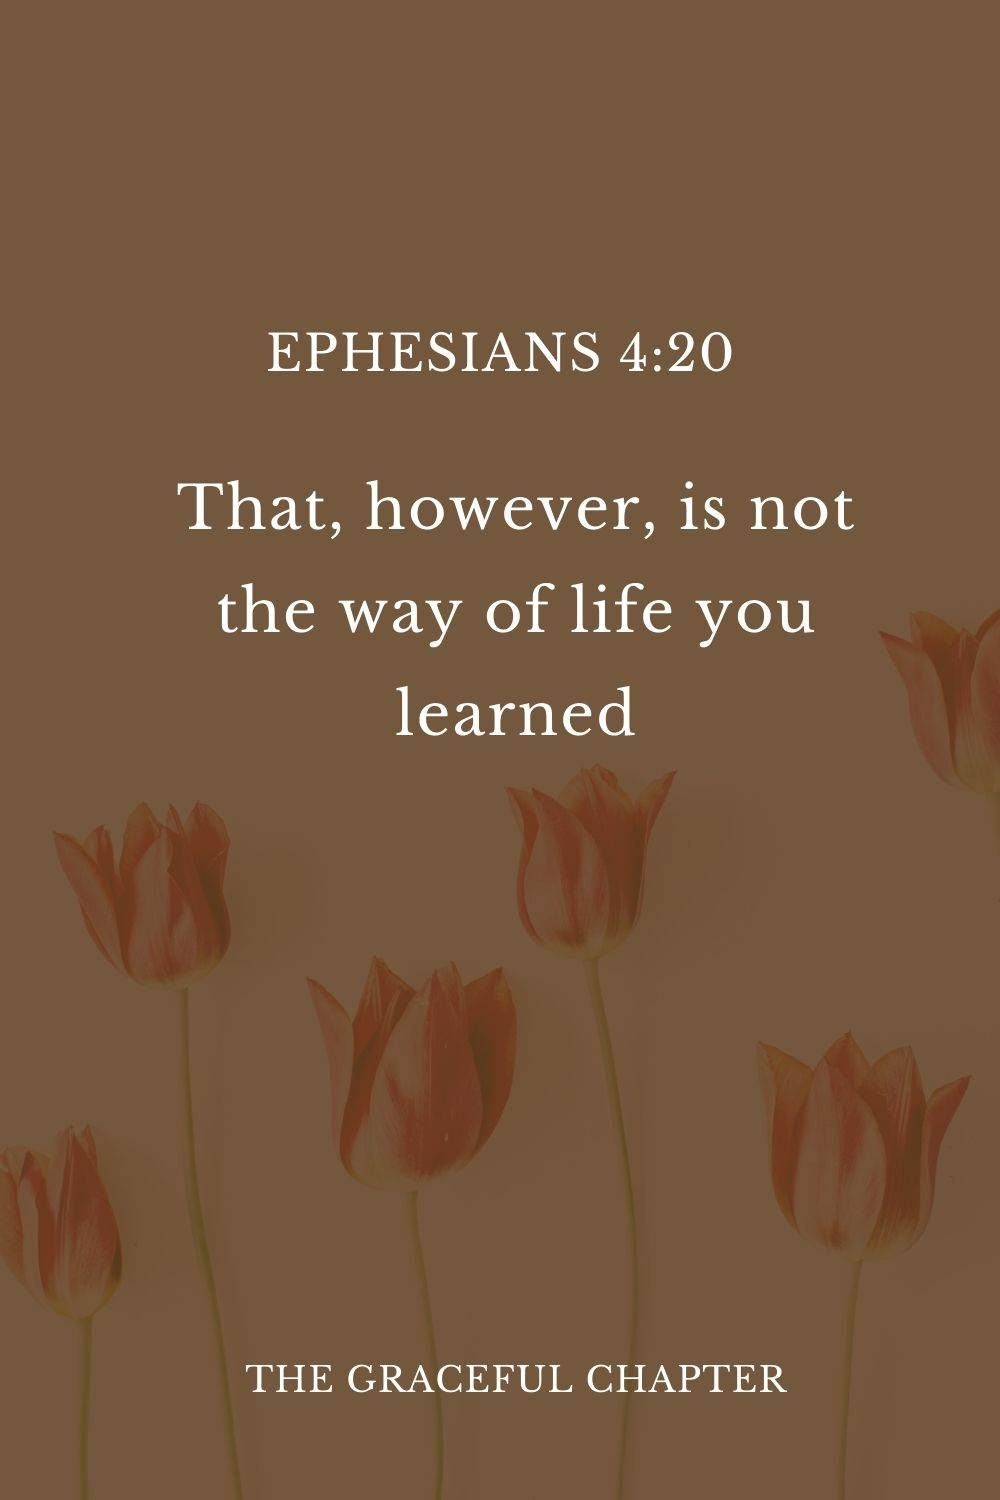 20 That, however, is not the way of life you learned Ephesians 4:20